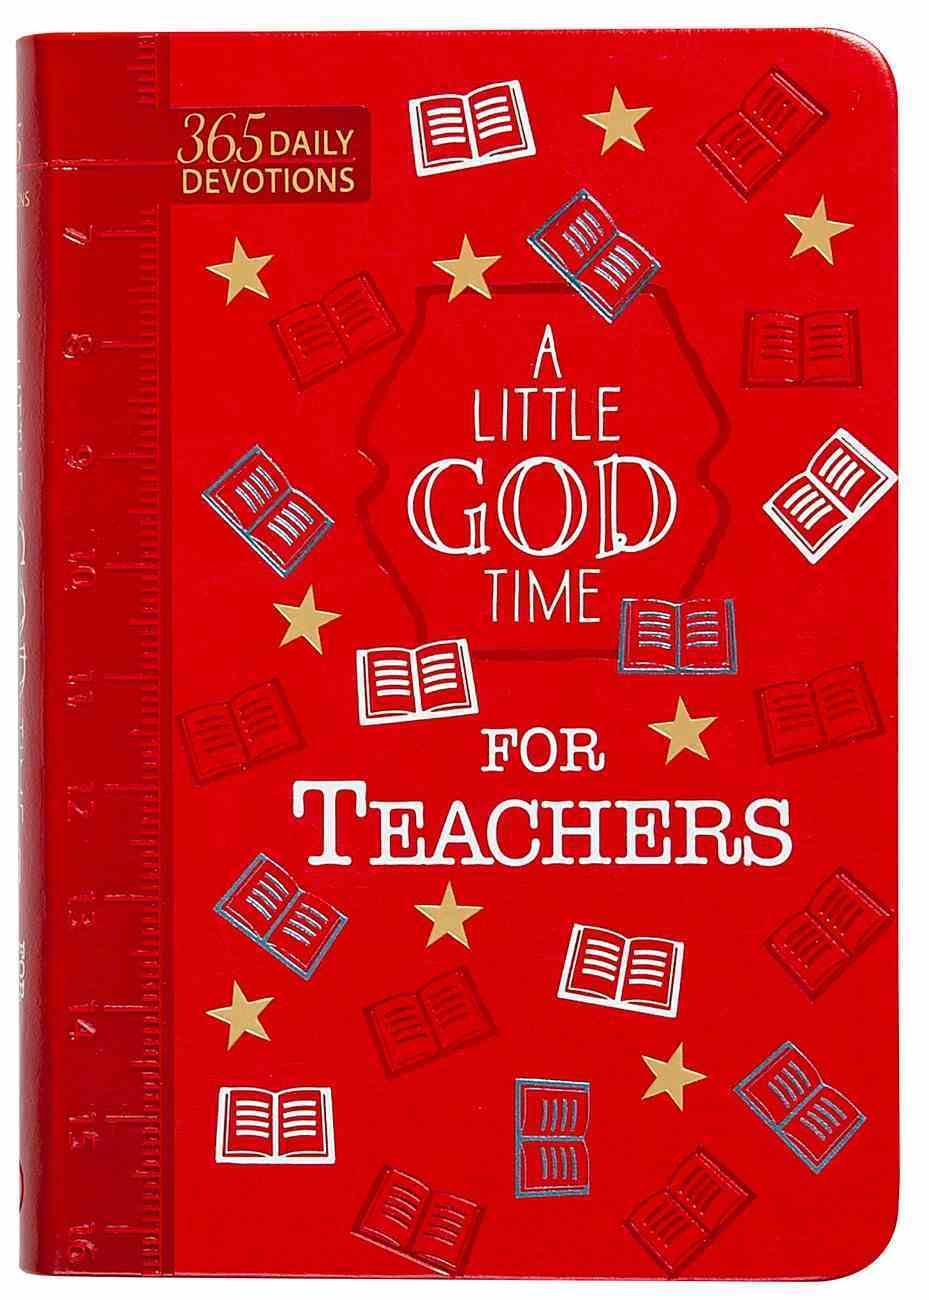 A Little God Time For Teachers: 365 Daily Devotions Imitation Leather